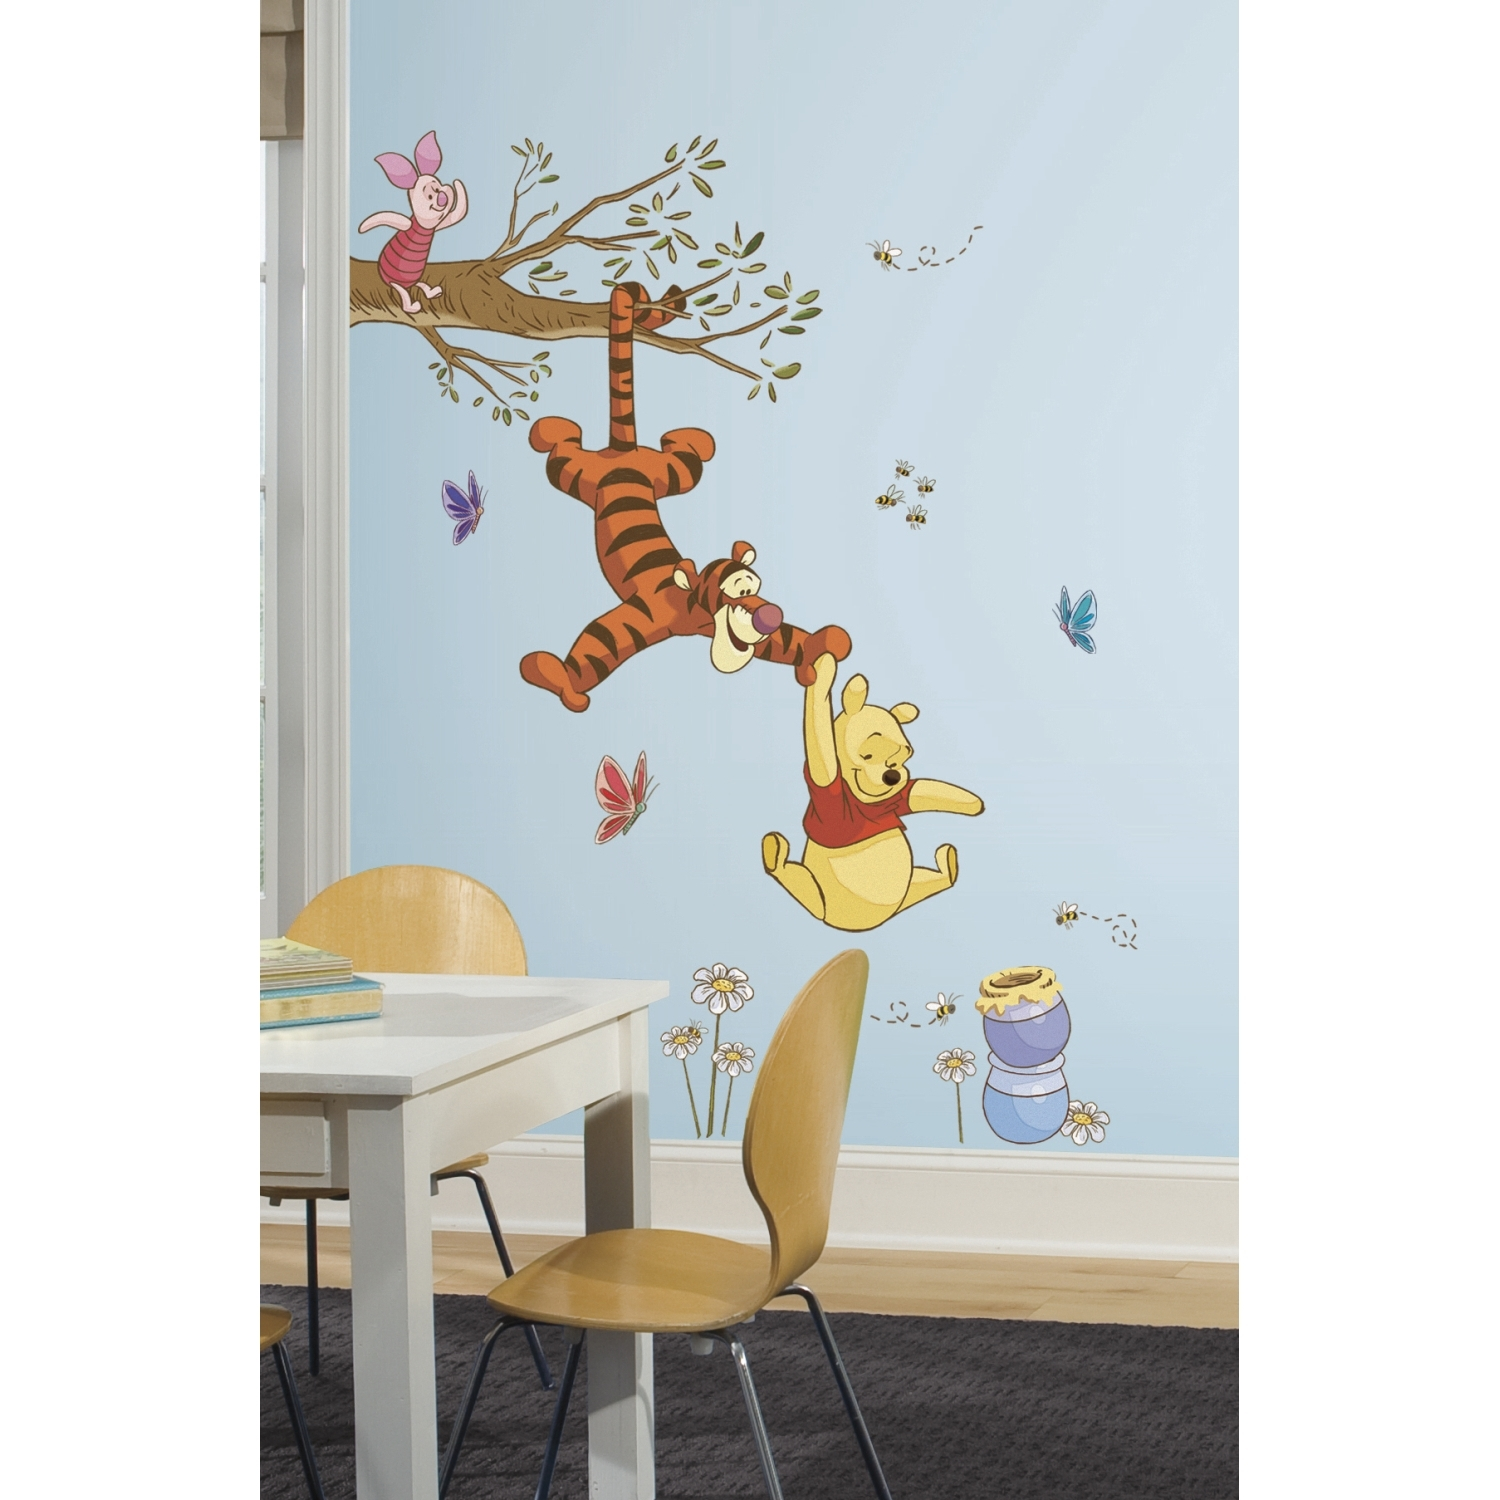 Newest Bring The Magic Home With These Winnie The Pooh Wall Decals Regarding Winnie The Pooh Wall Decor (View 9 of 15)